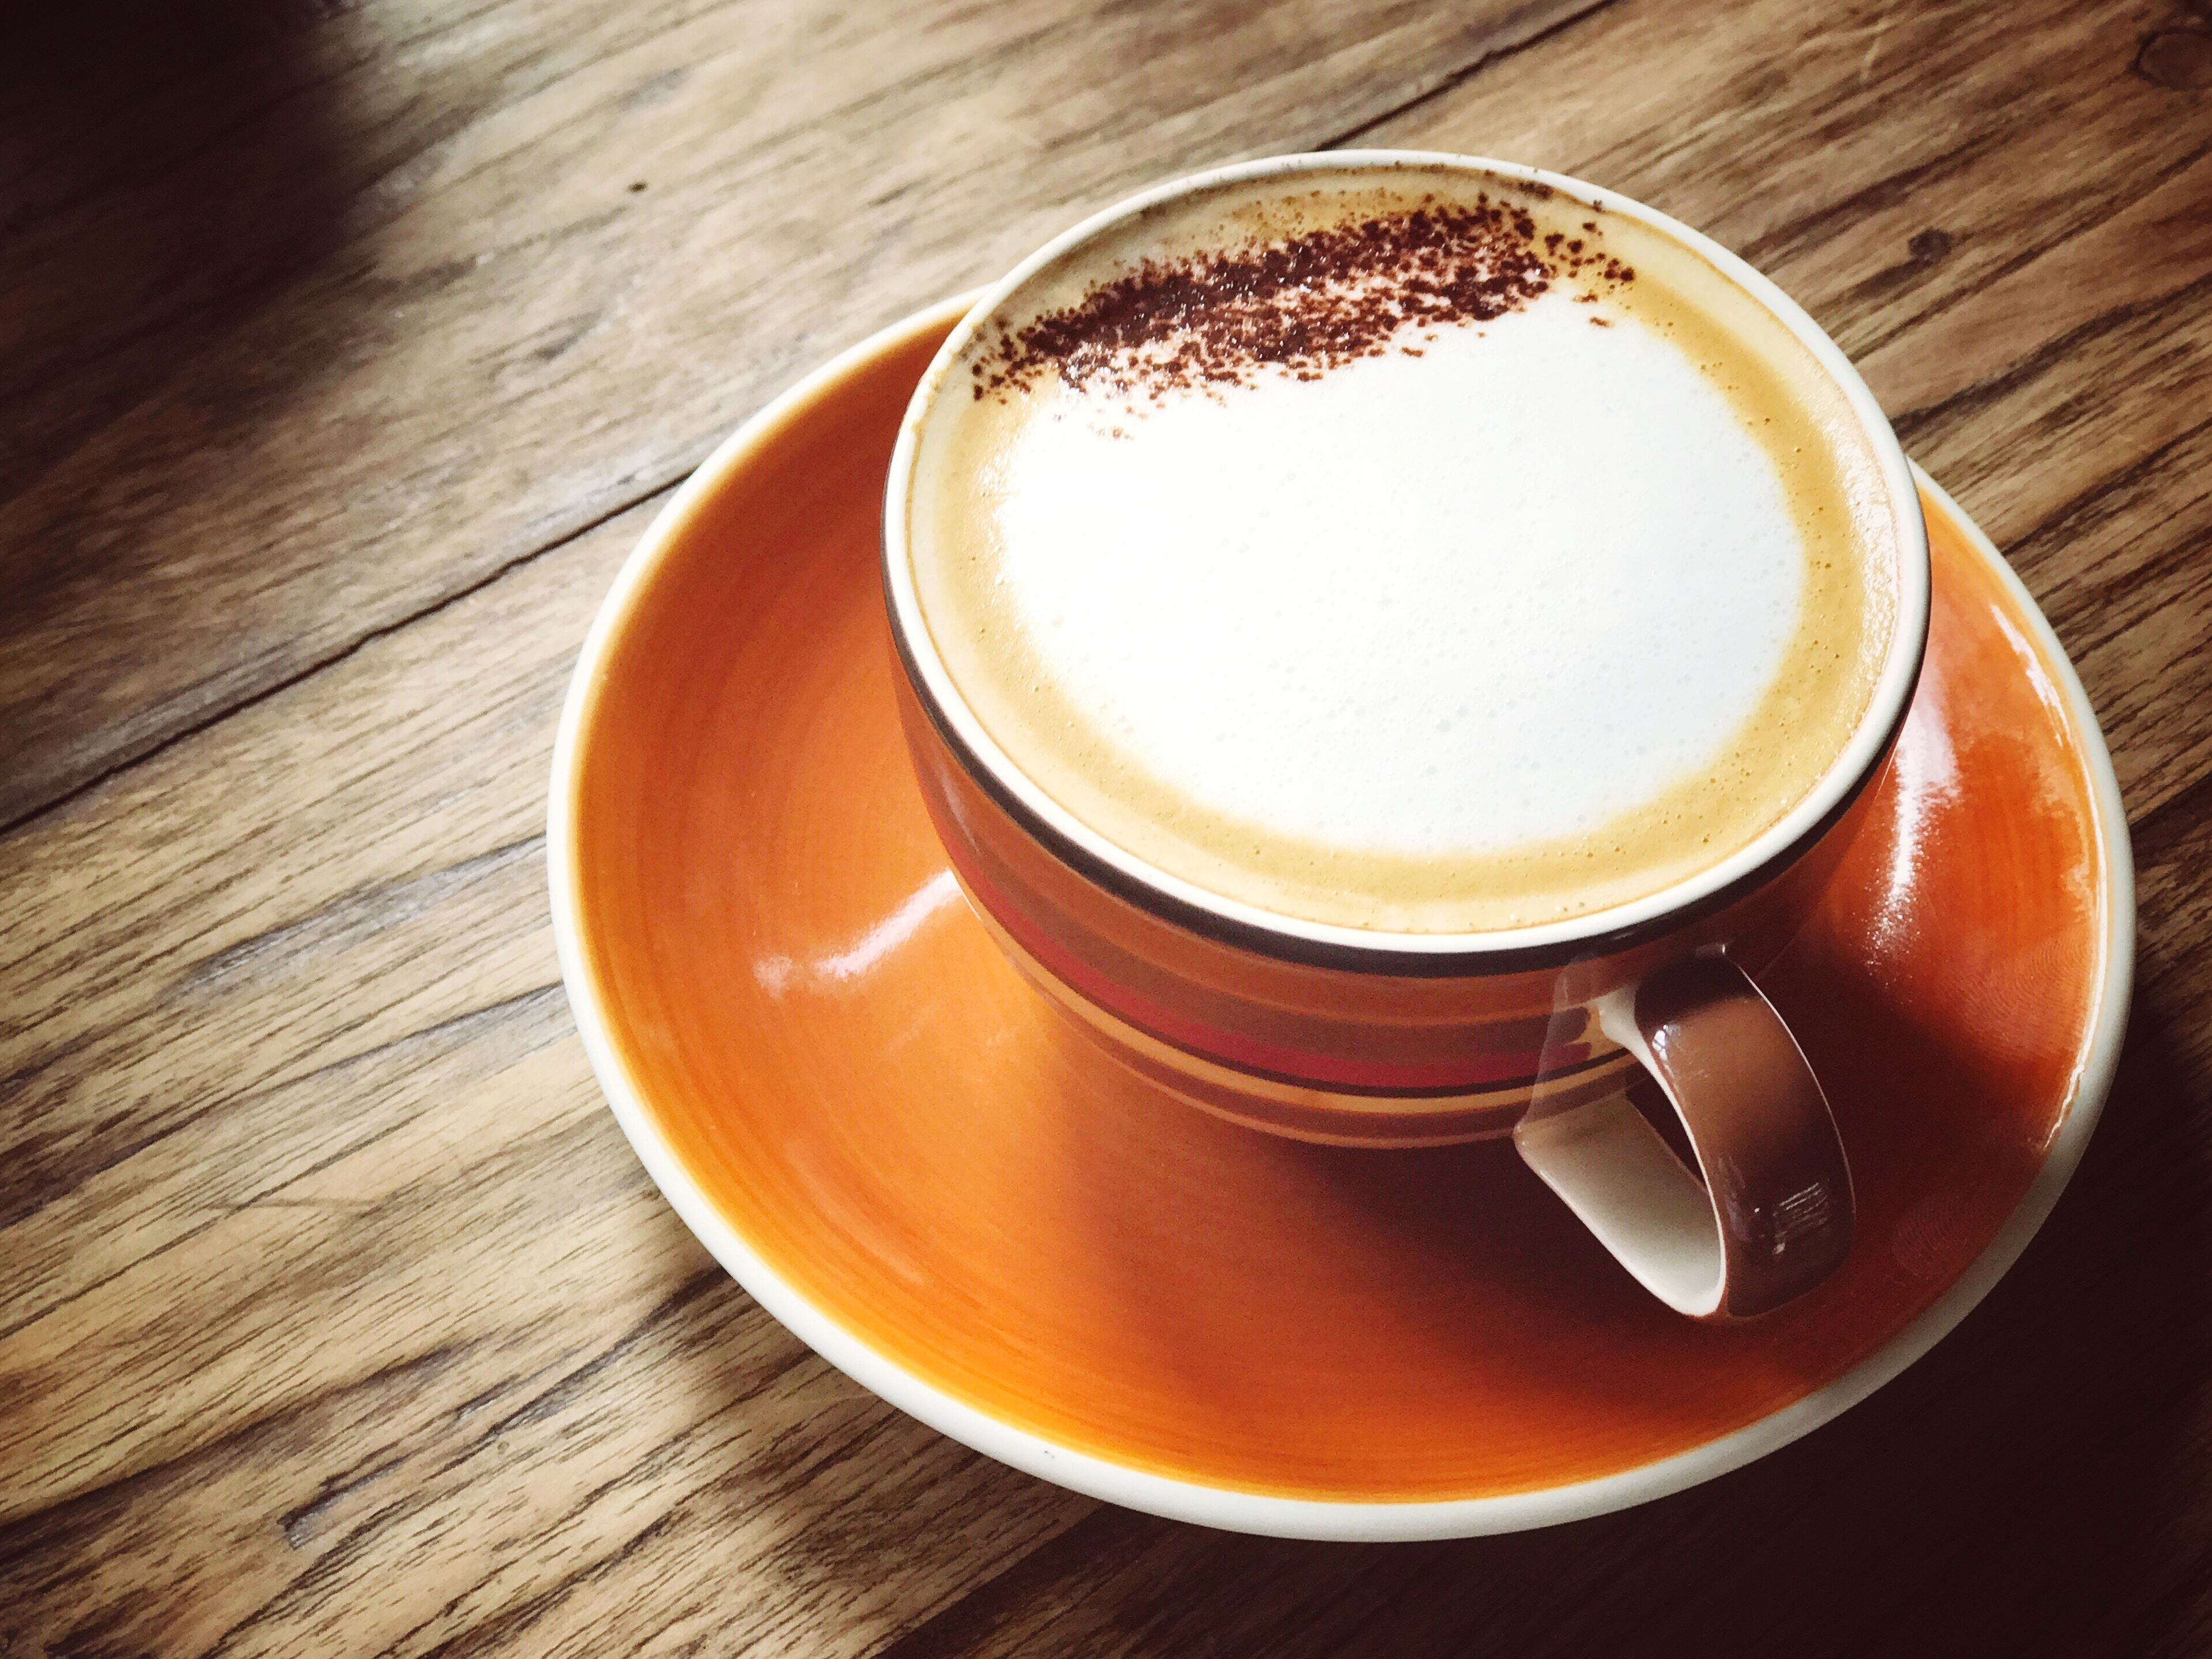 Free picture drink eyeglasses coffee cup table porcelain saucer table wood coffee coffee cup cream drink geotapseo Gallery